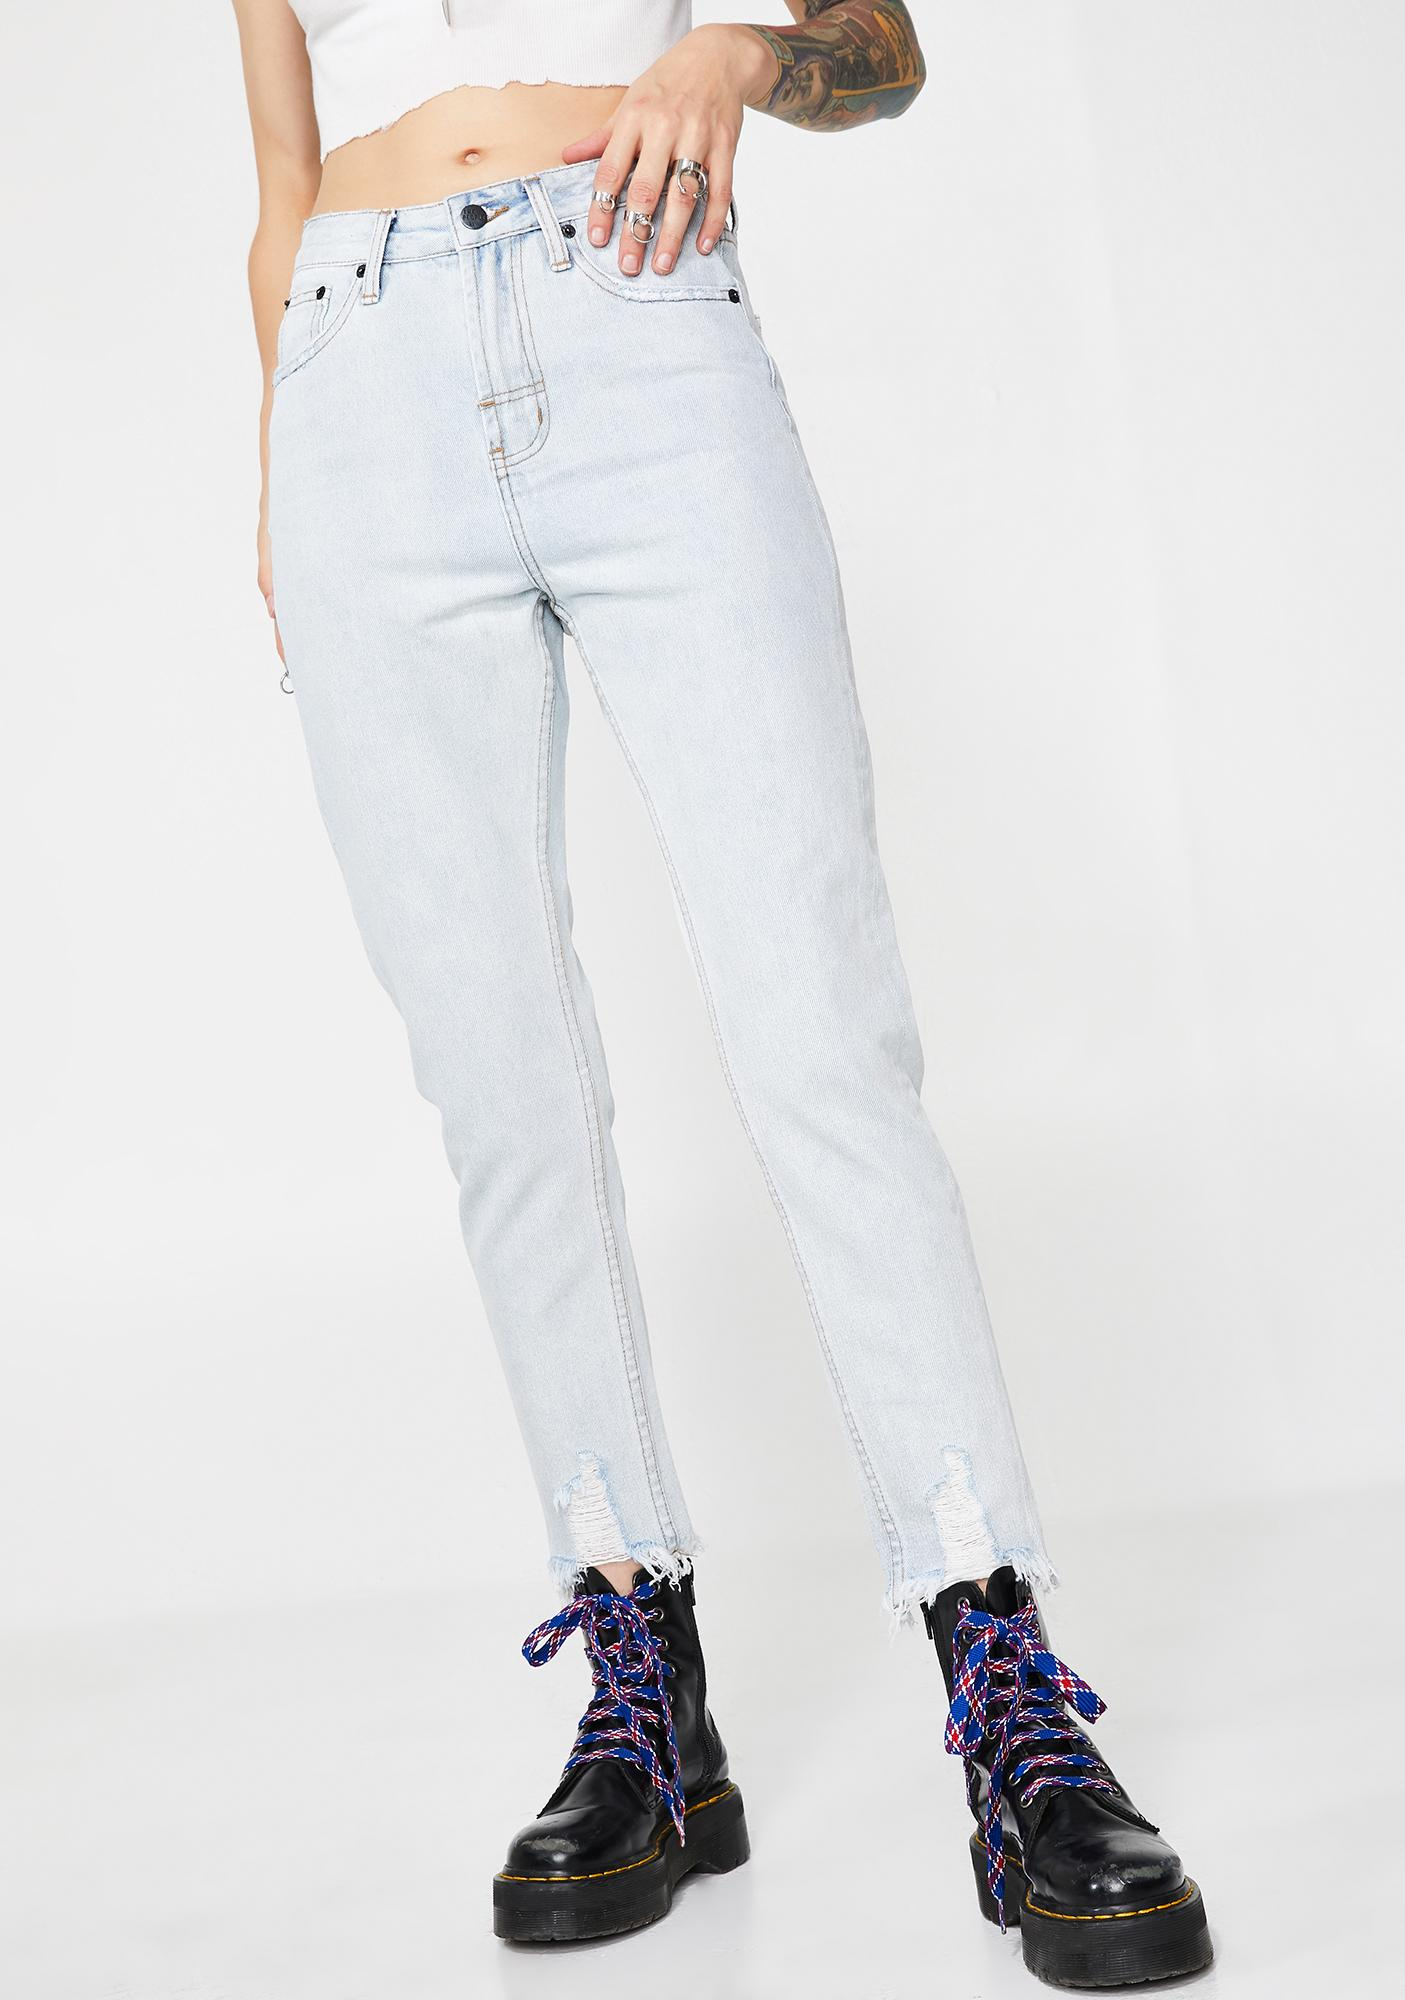 The People VS Powder Blue High Waist Mum Jeans